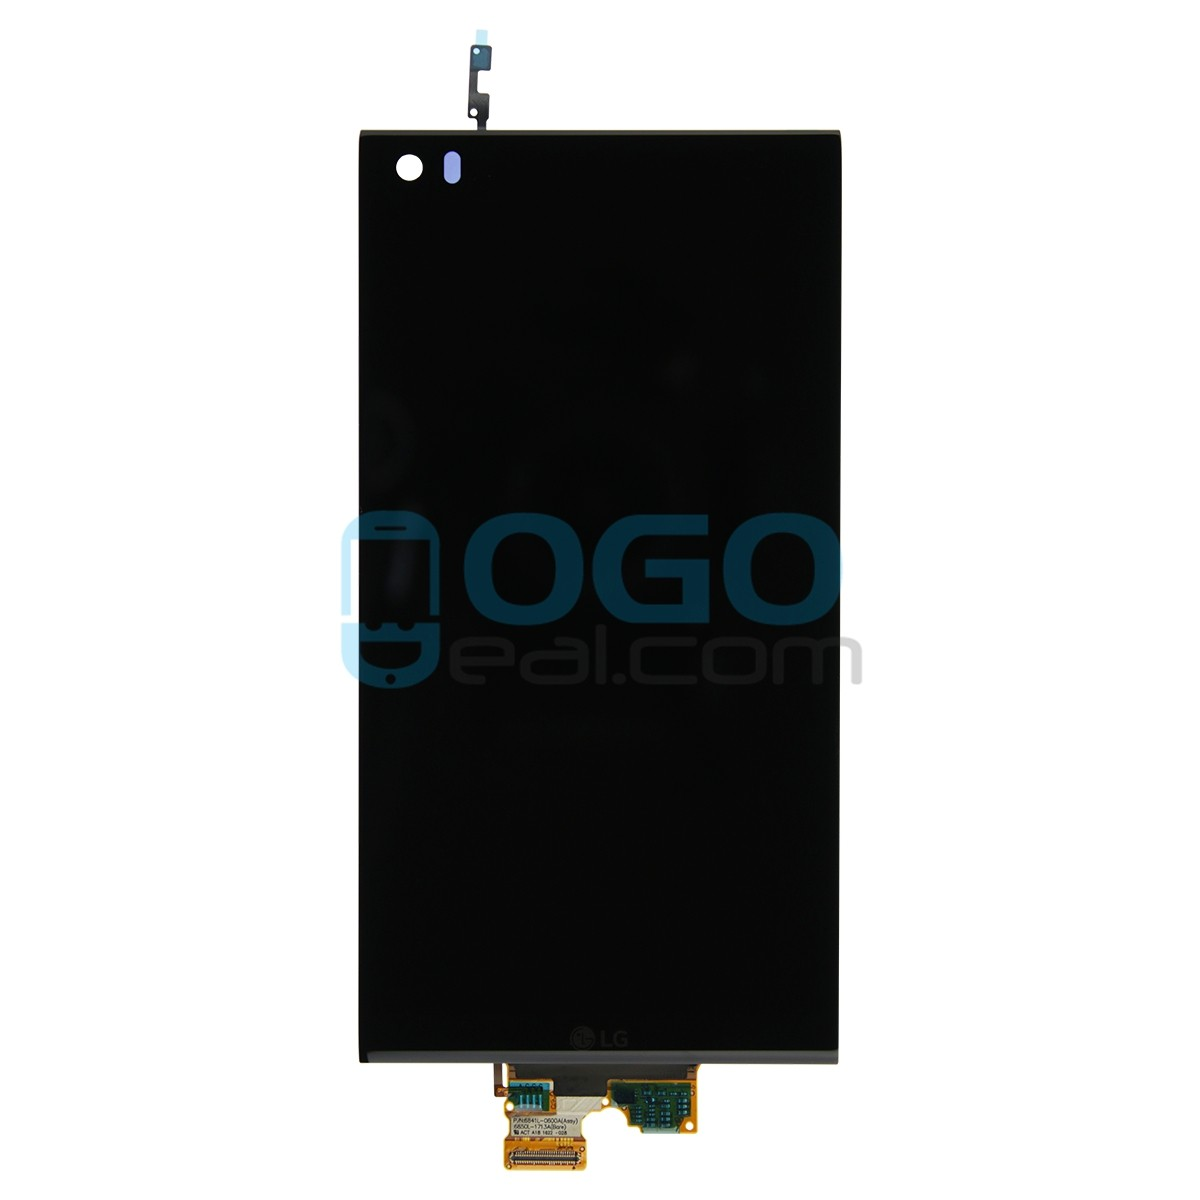 Gartengestaltung Berisha München Oem Lcd Digitizer Touch Screen Assembly Replacement For Lg V20